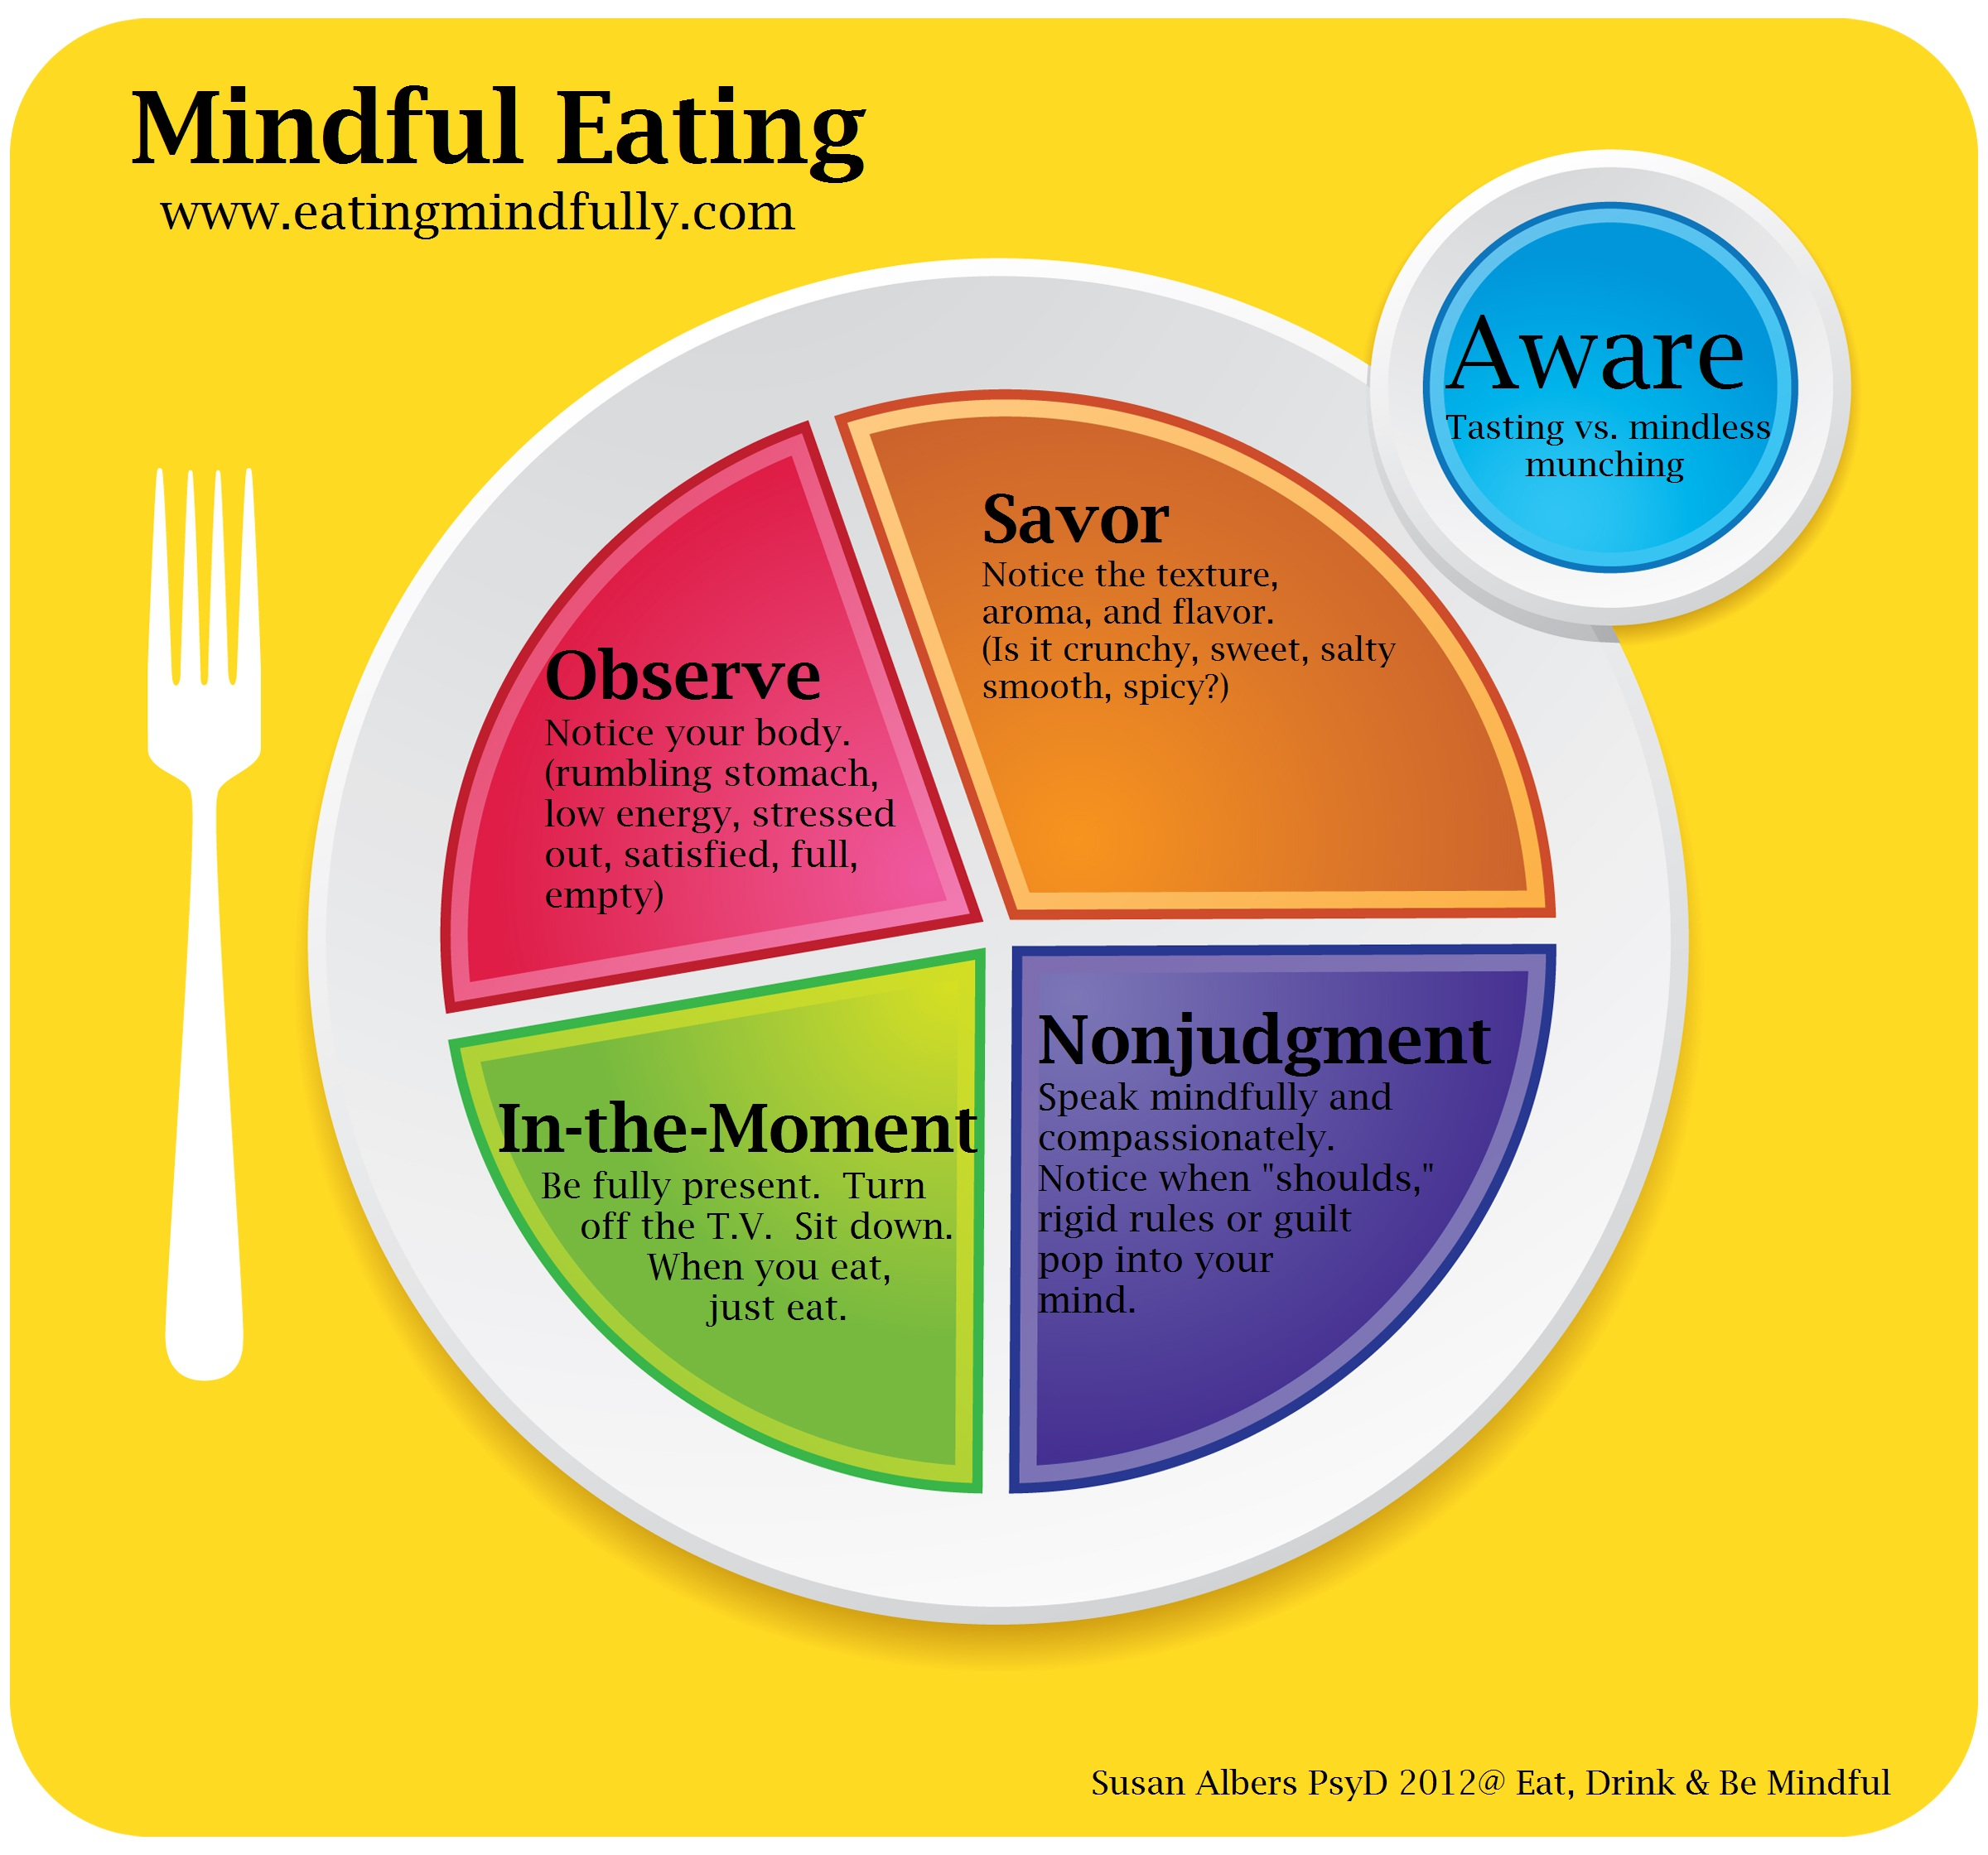 Live in the present with mindful eating.